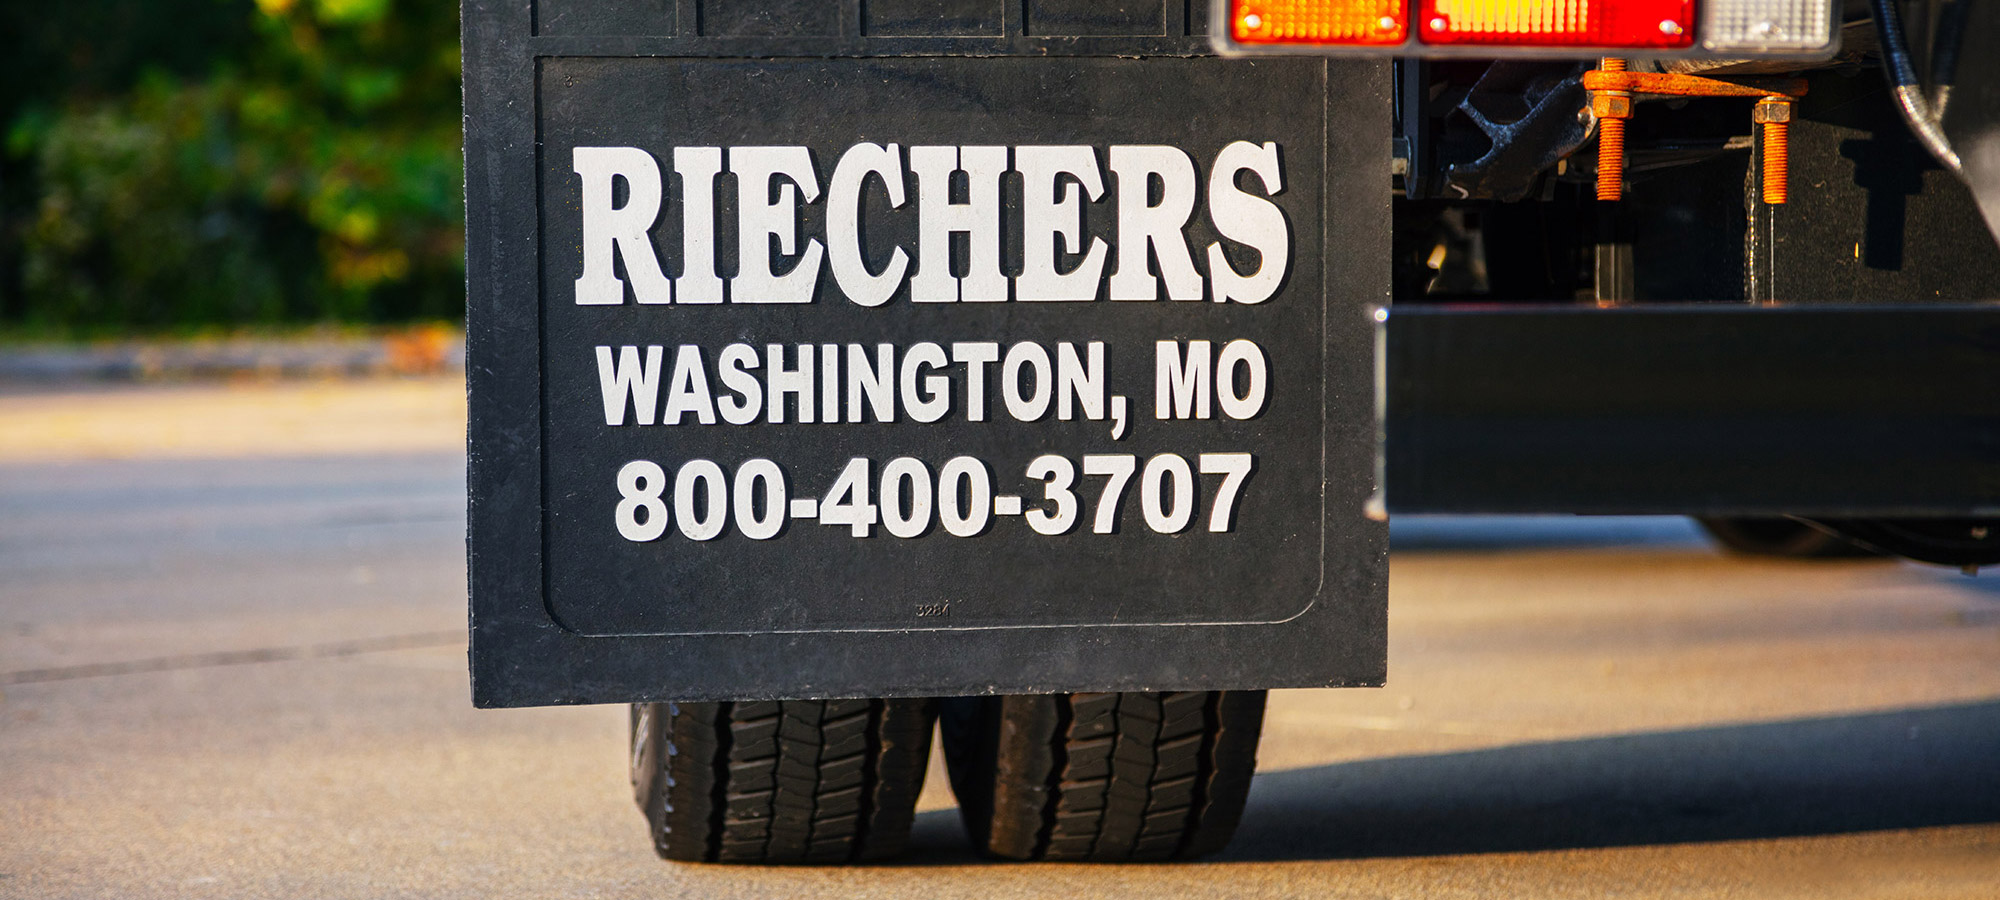 About Riechers Truck Bodies